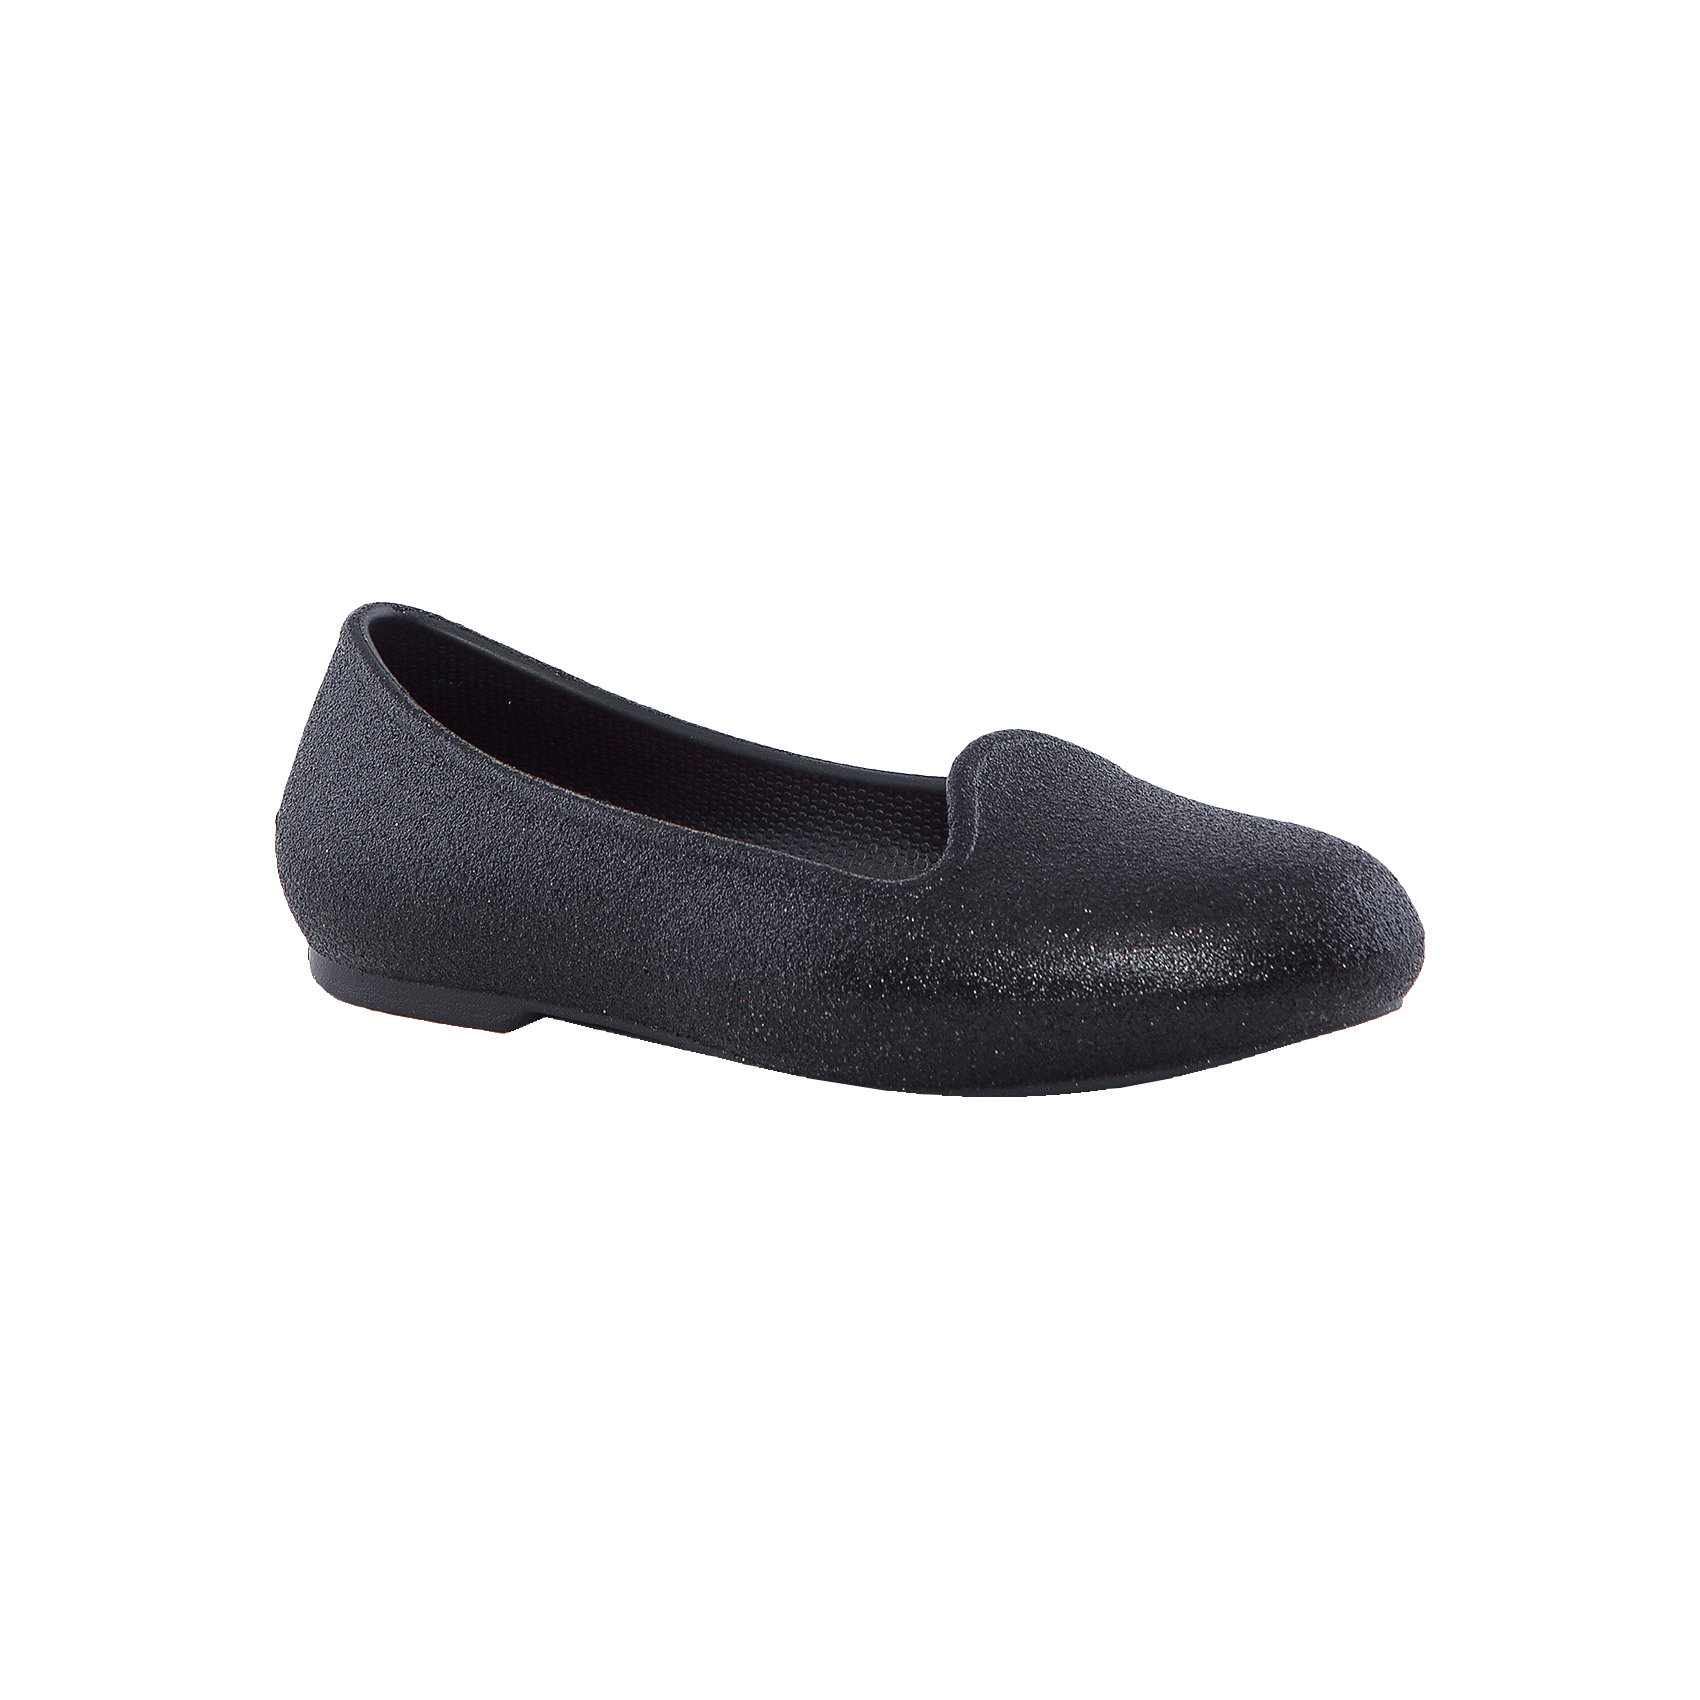 Сабо Eve Sparkle Youth US 3 Black Flats для девочки Crocs